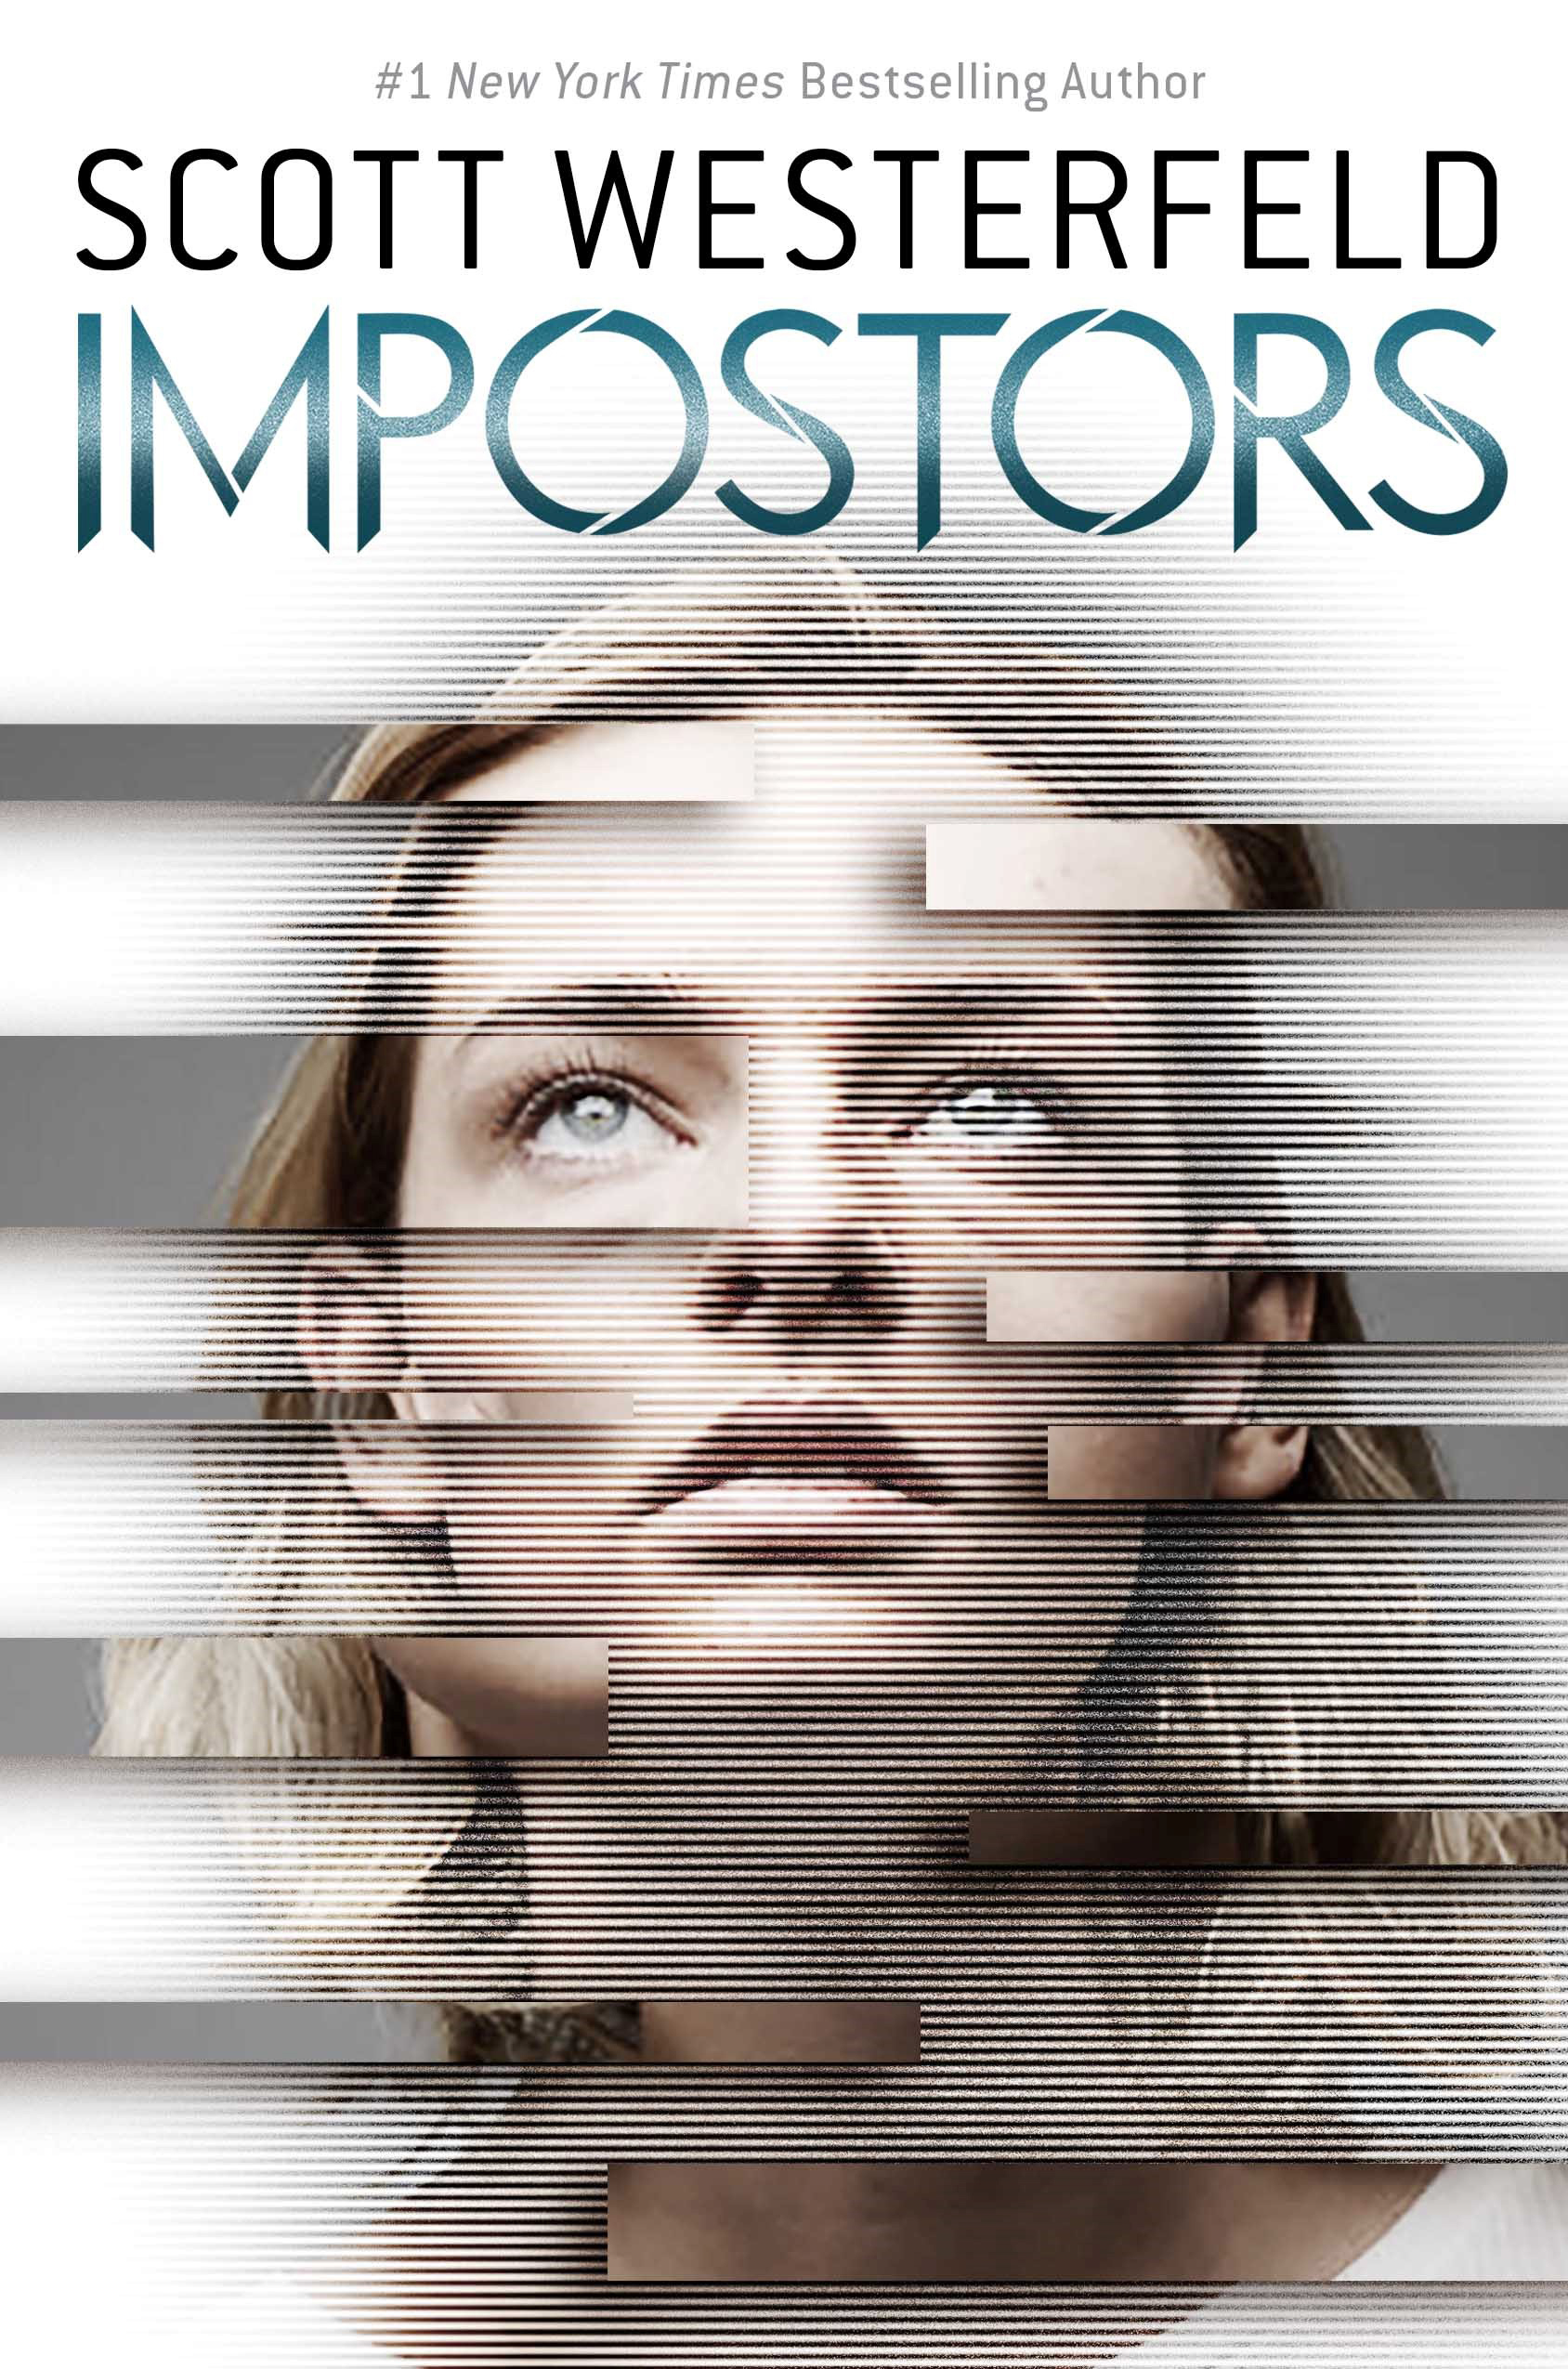 Image result for impostors scott westerfeld